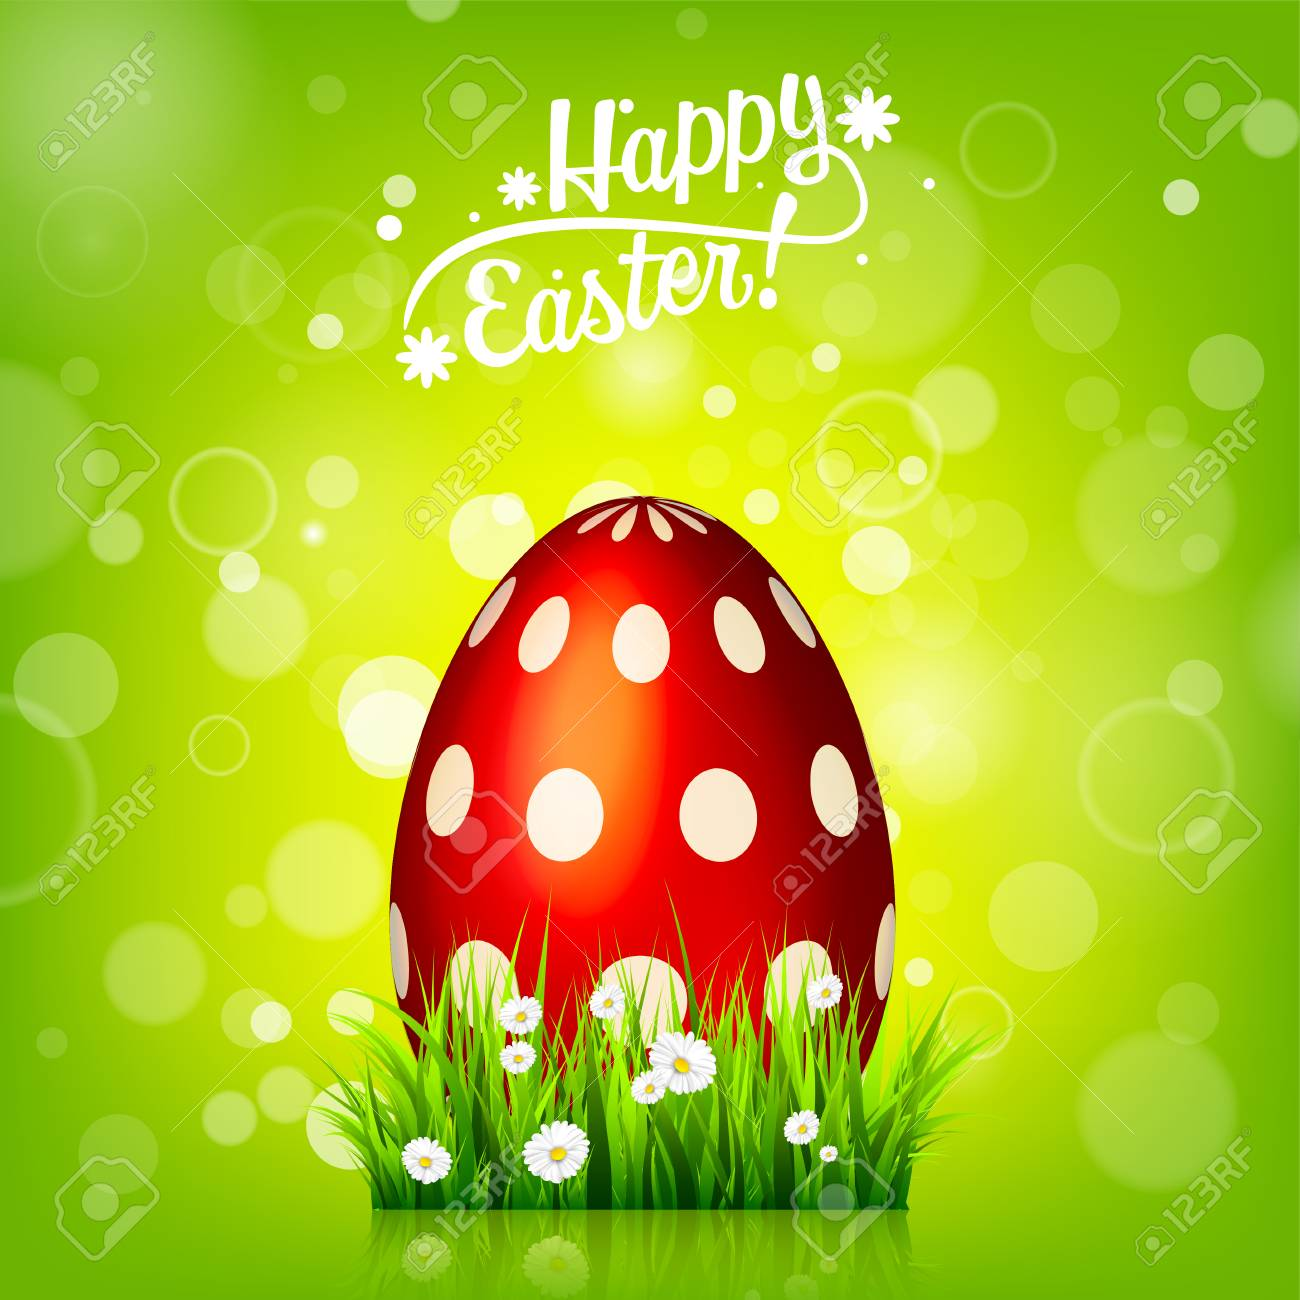 easter egg hunt green background april holidays flowers and grass abstract banner